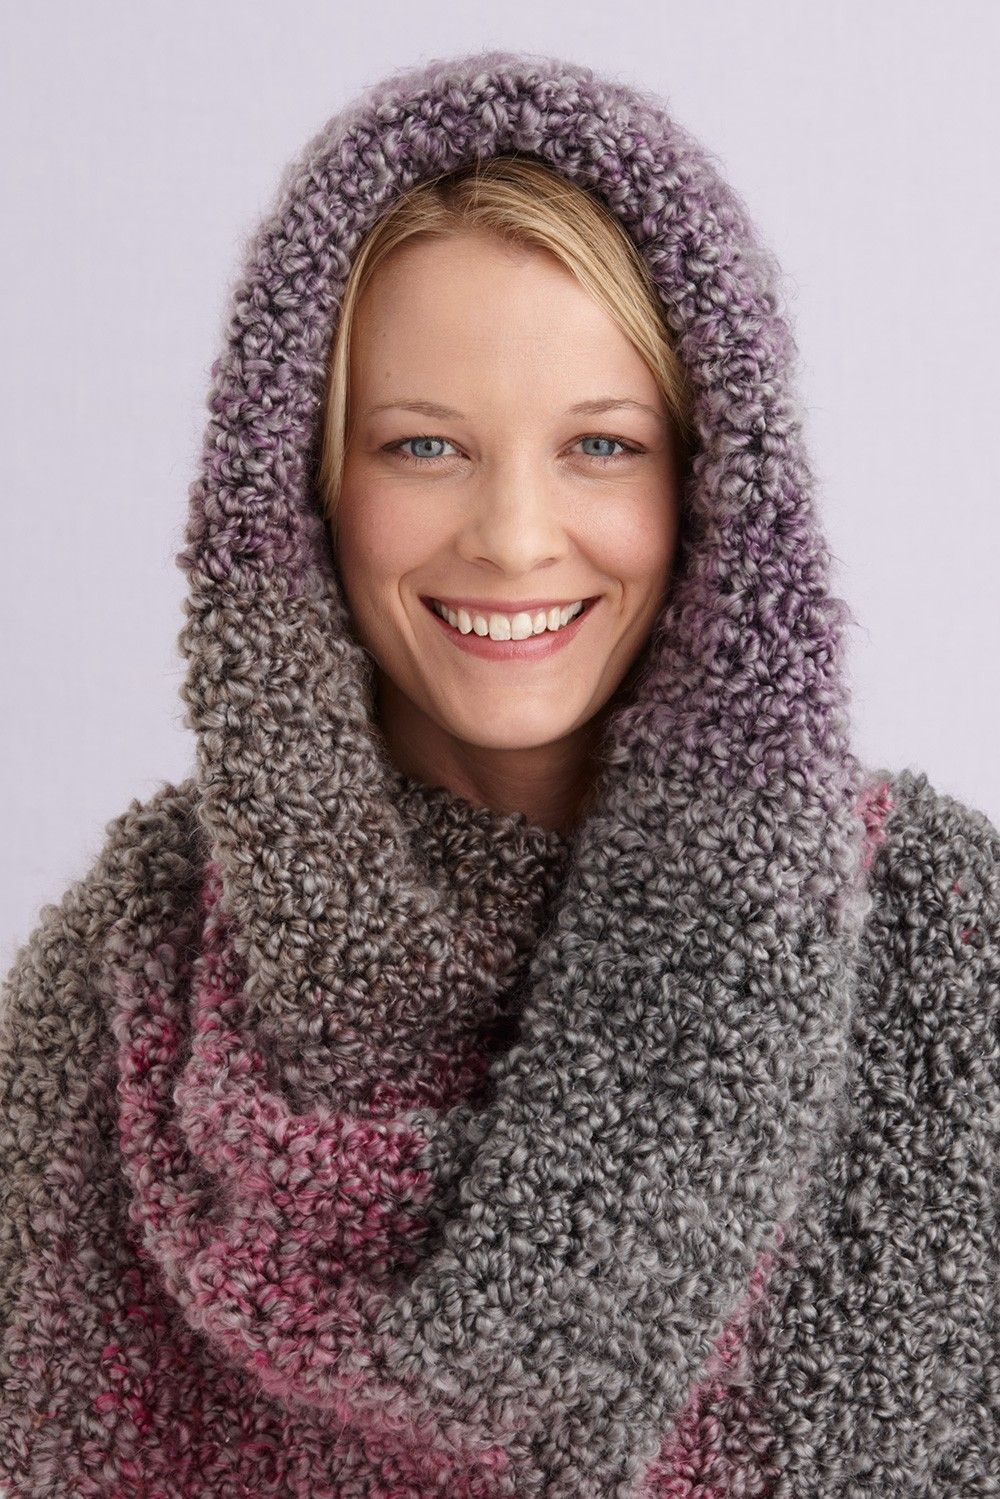 Hooded Scarf Pattern Amazing Inspiration Ideas